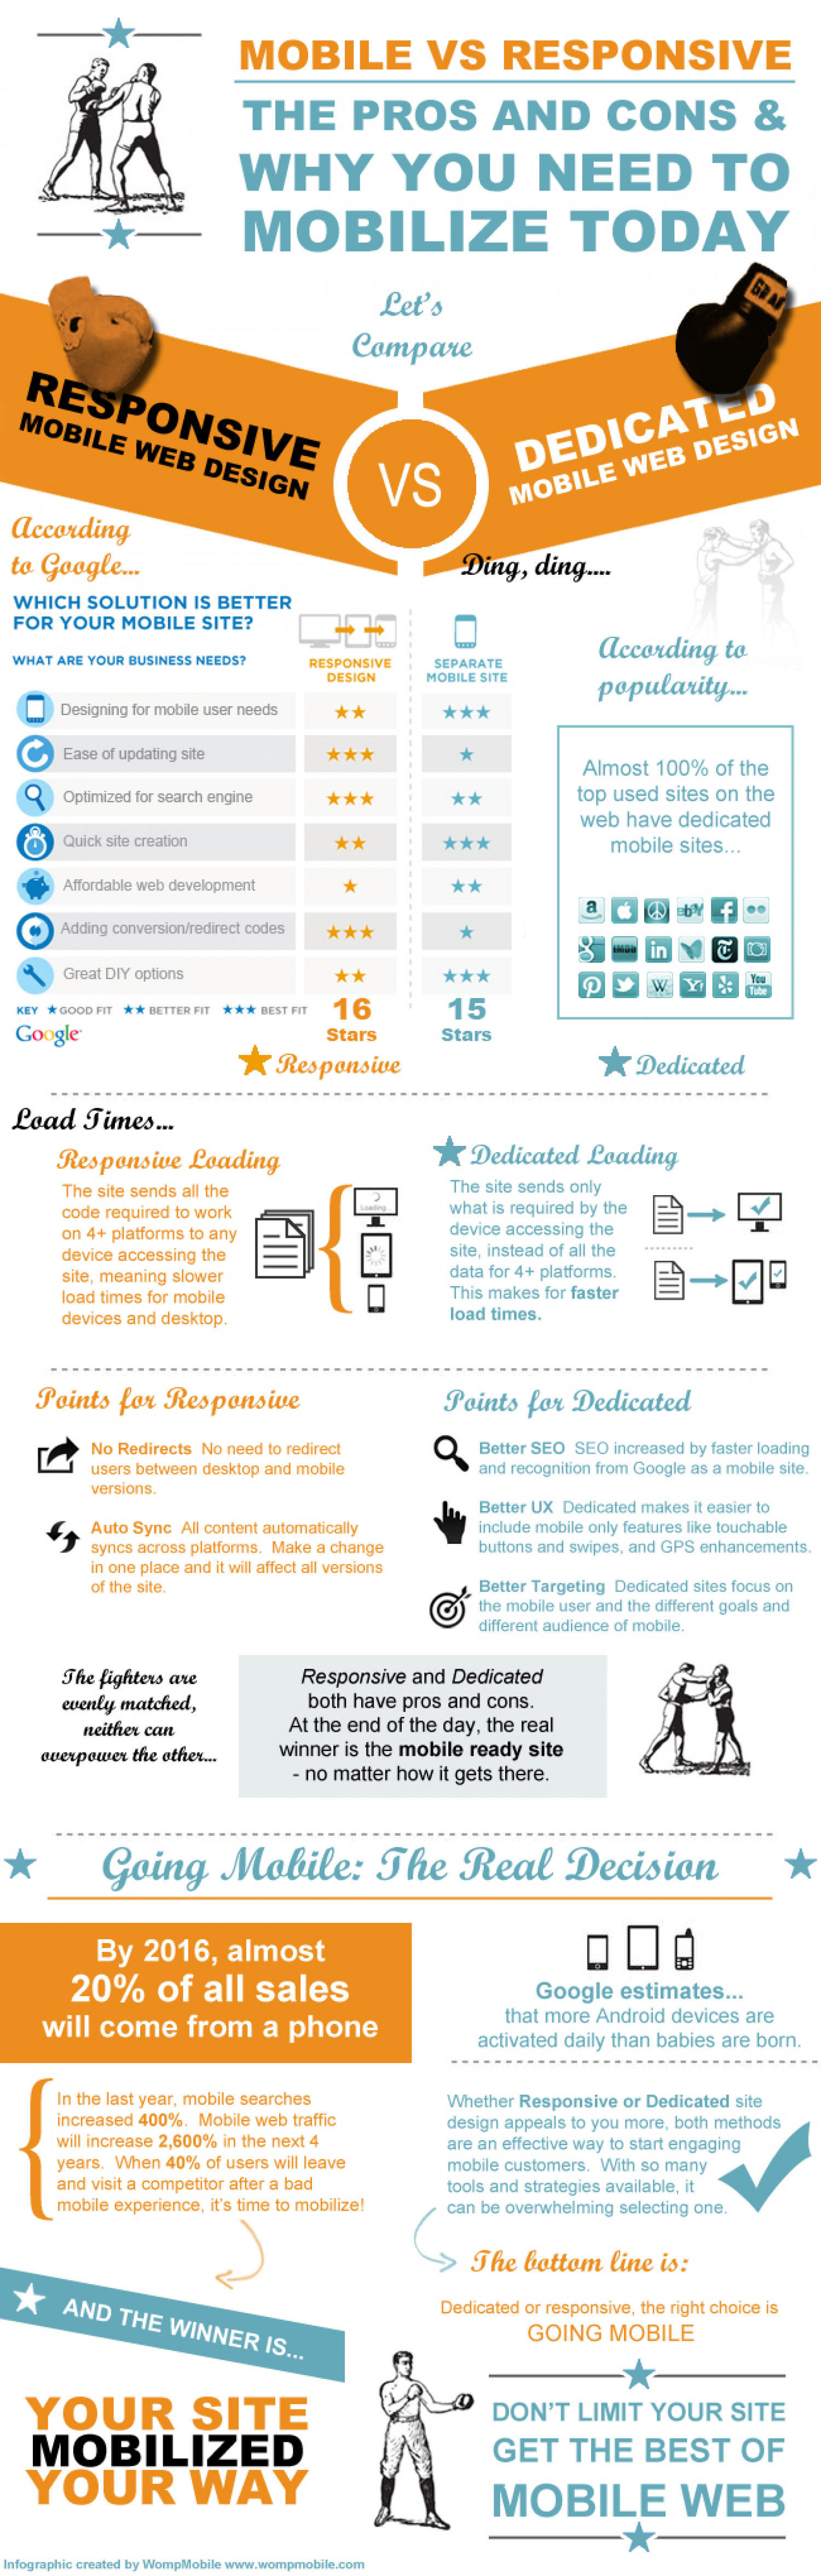 Mobile vs Responsive Infographic